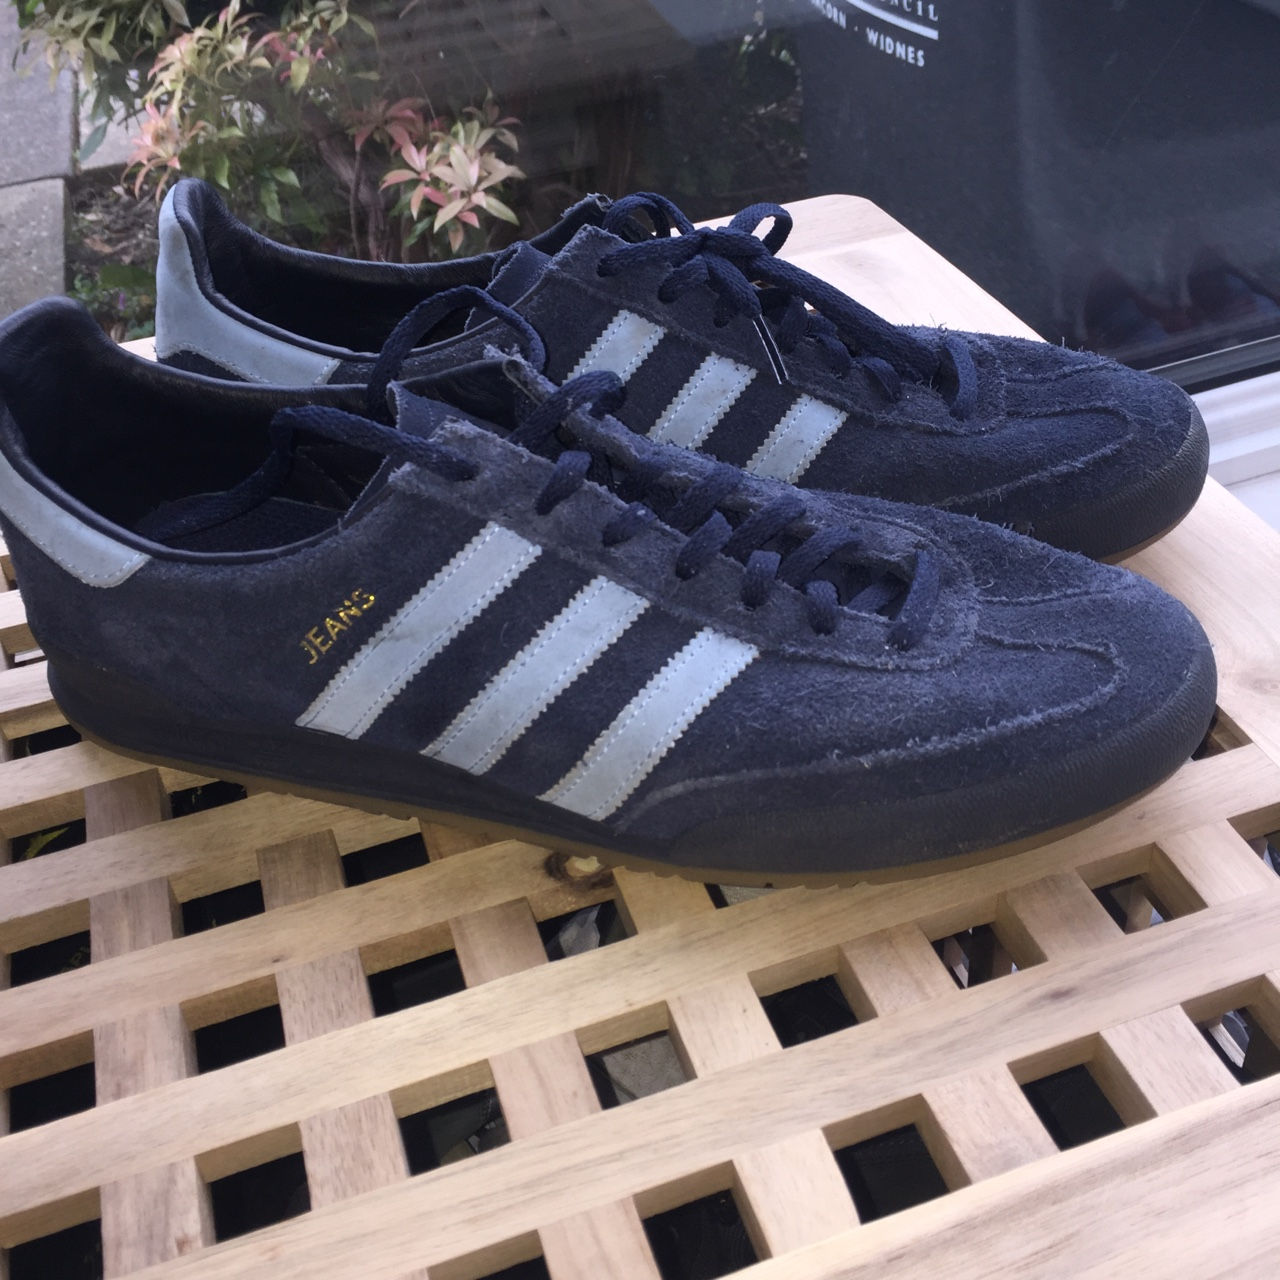 Adidas jeans trainers uk size 10.5